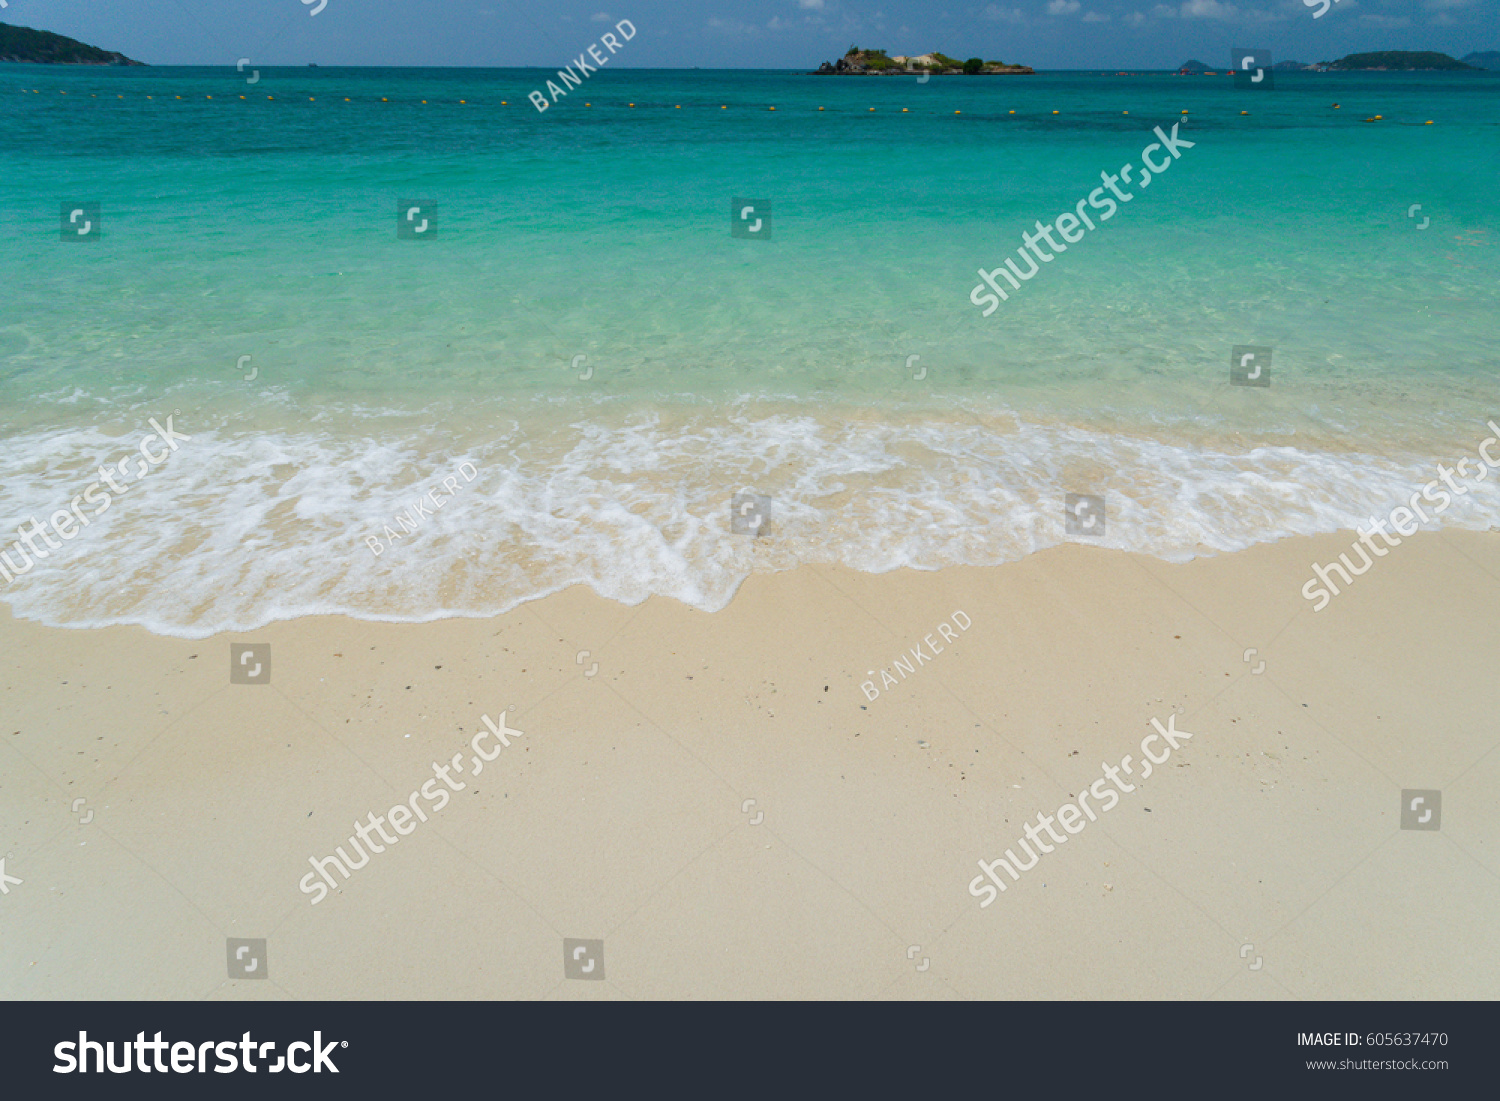 Beauty beach and waves beautiful tropical sea, Holiday and vacation concept, Summer concept #605637470